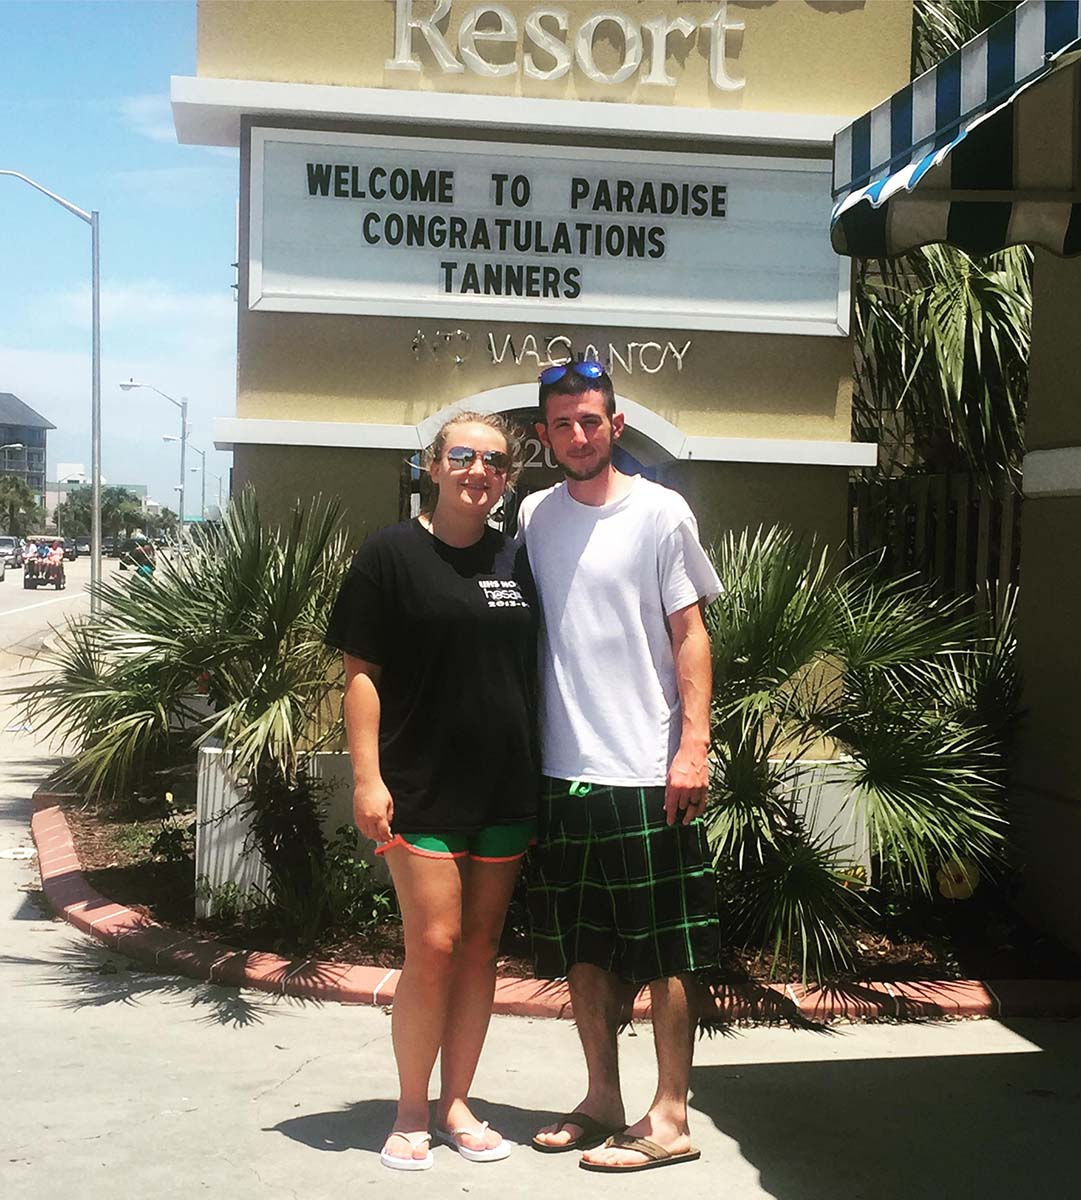 Couple picture in front of resort sign